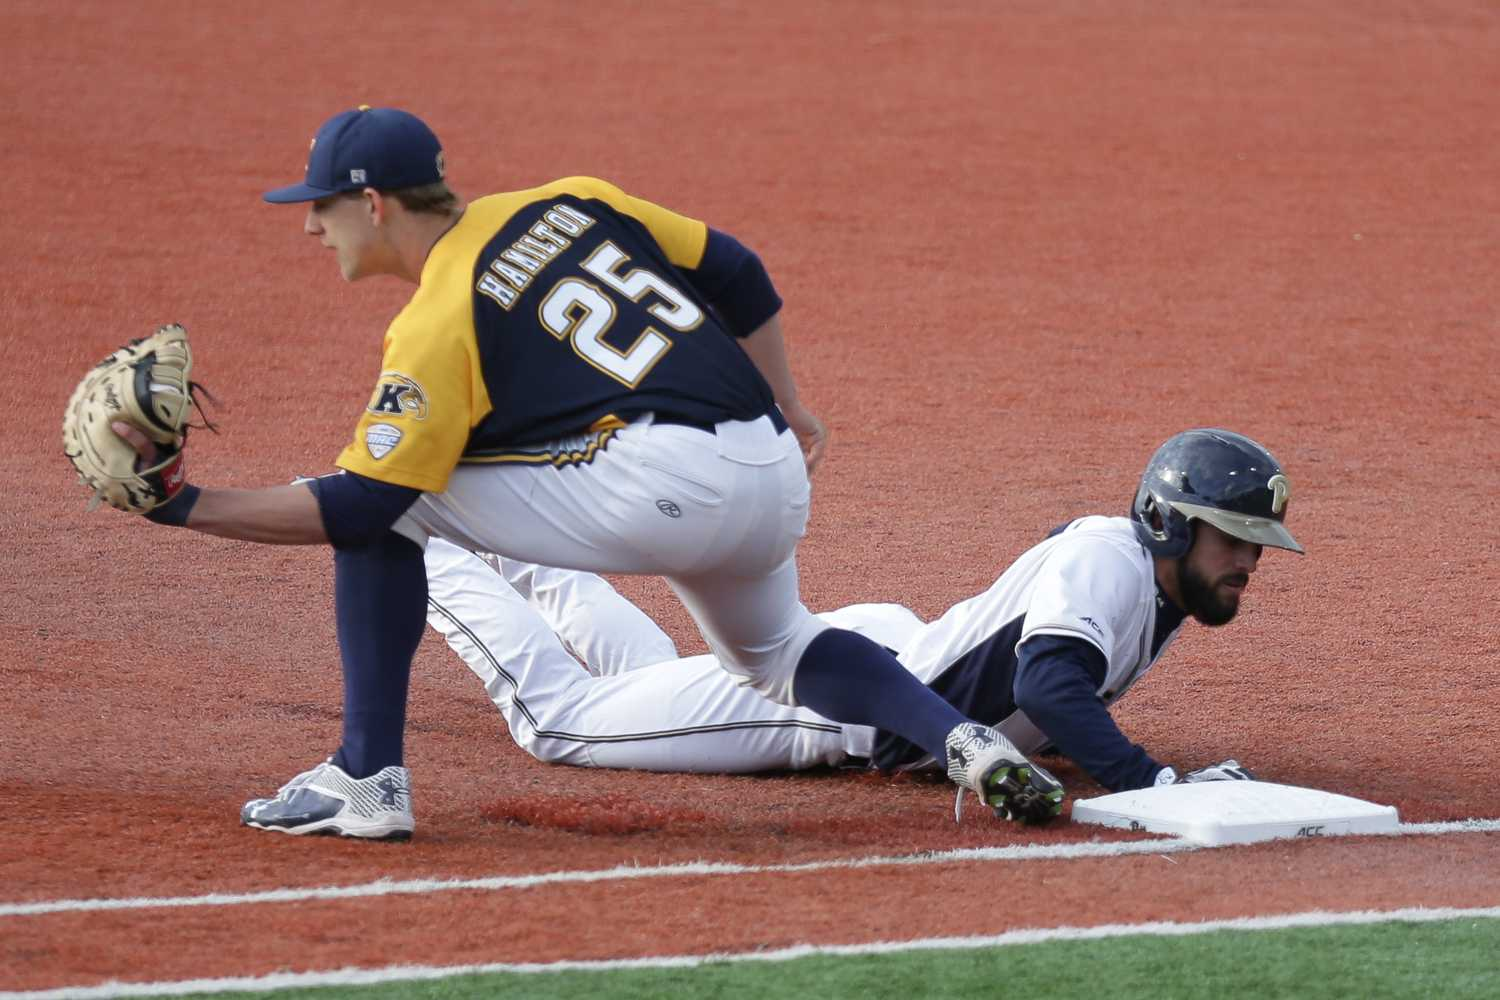 Redshirt senior Frank Maldonado slides into first base after attempting to steal second at Pitt's 4-1 loss to Kent State Tuesday evening. (Photo by Thomas Yang | Visual Editor)